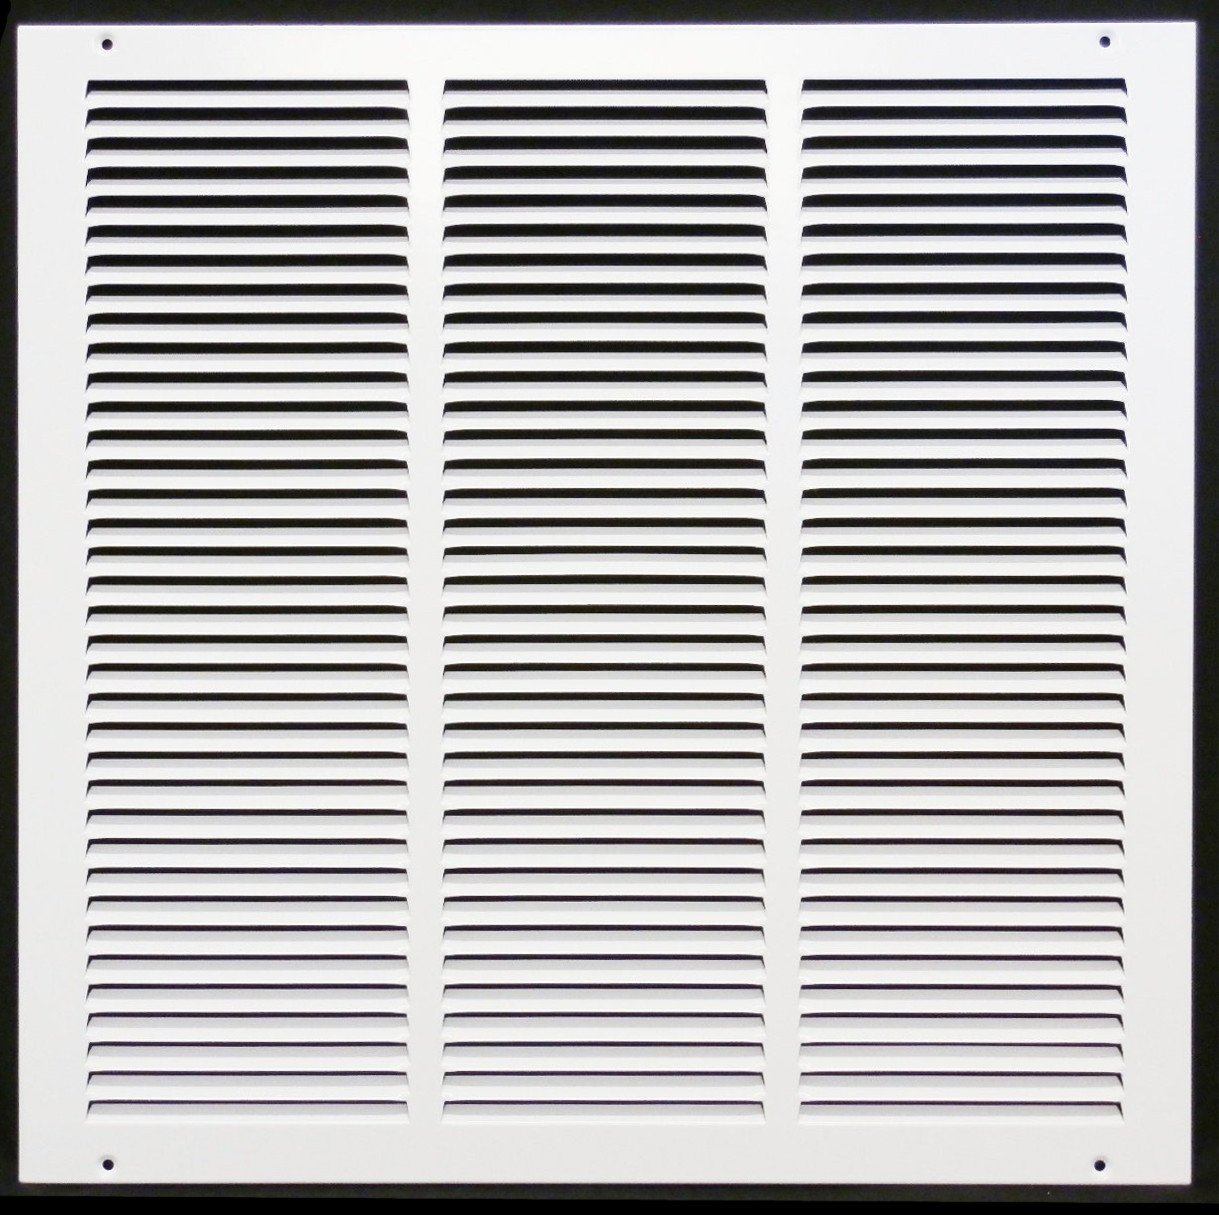 16''w X 16''h Steel Return Air Grilles - Sidewall and Cieling - HVAC DUCT COVER - White [Outer Dimensions: 17.75''w X 17.75''h]